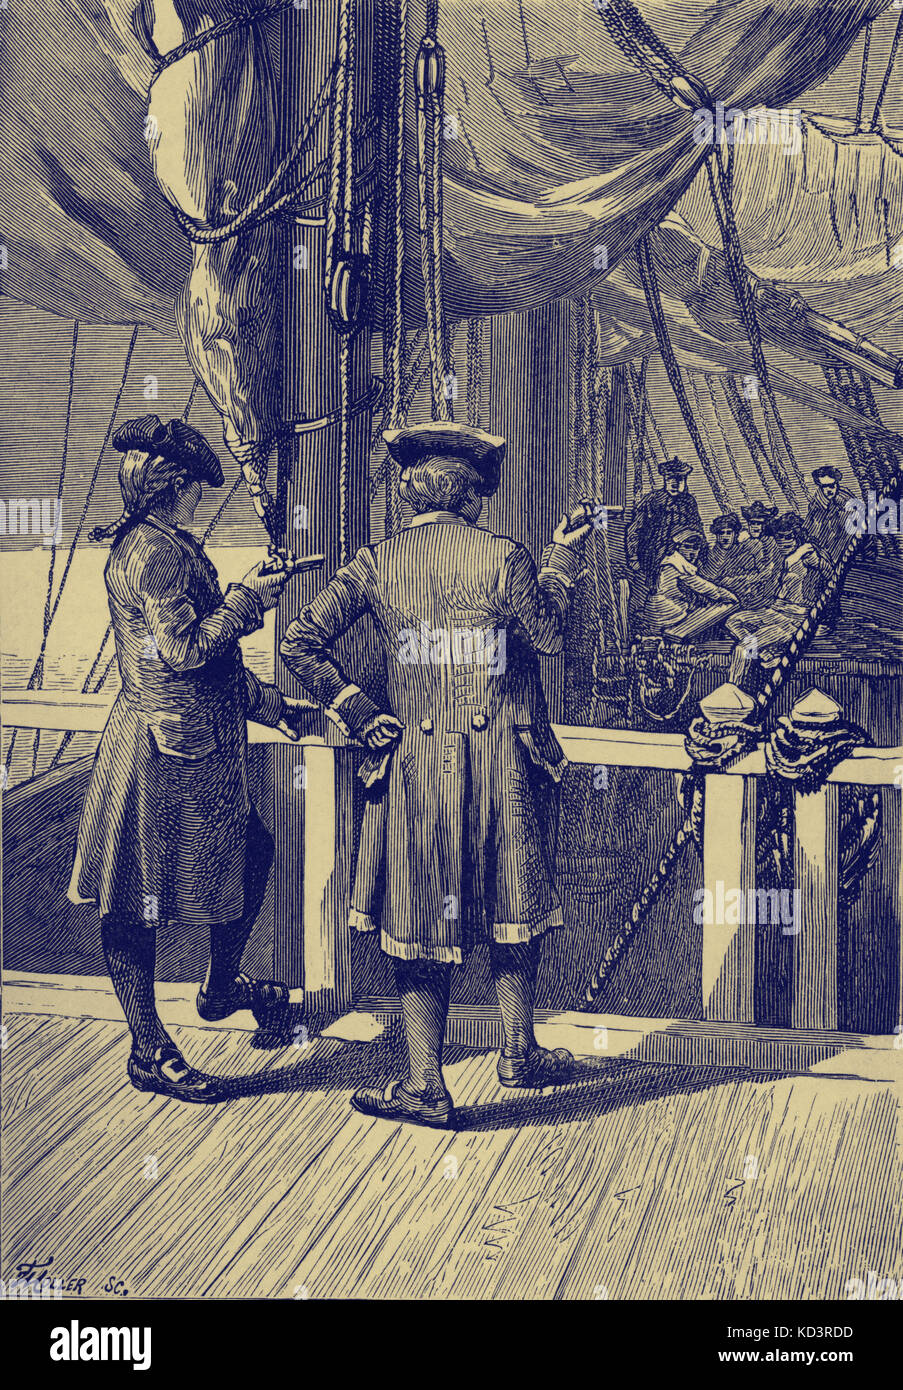 Treasure Island by Robert Louis Stevenson. Caption reads: 'If any one of you six make a sign of any description, that man's dead.' (Squire and the Captain on deck.)  Ch XVI How the Ship Was Abandoned.  First published as serial 1881-82. RLS: Scottish novelist, poet, and travel writer, 13 November 1850 – 3 December 1894. Stock Photo